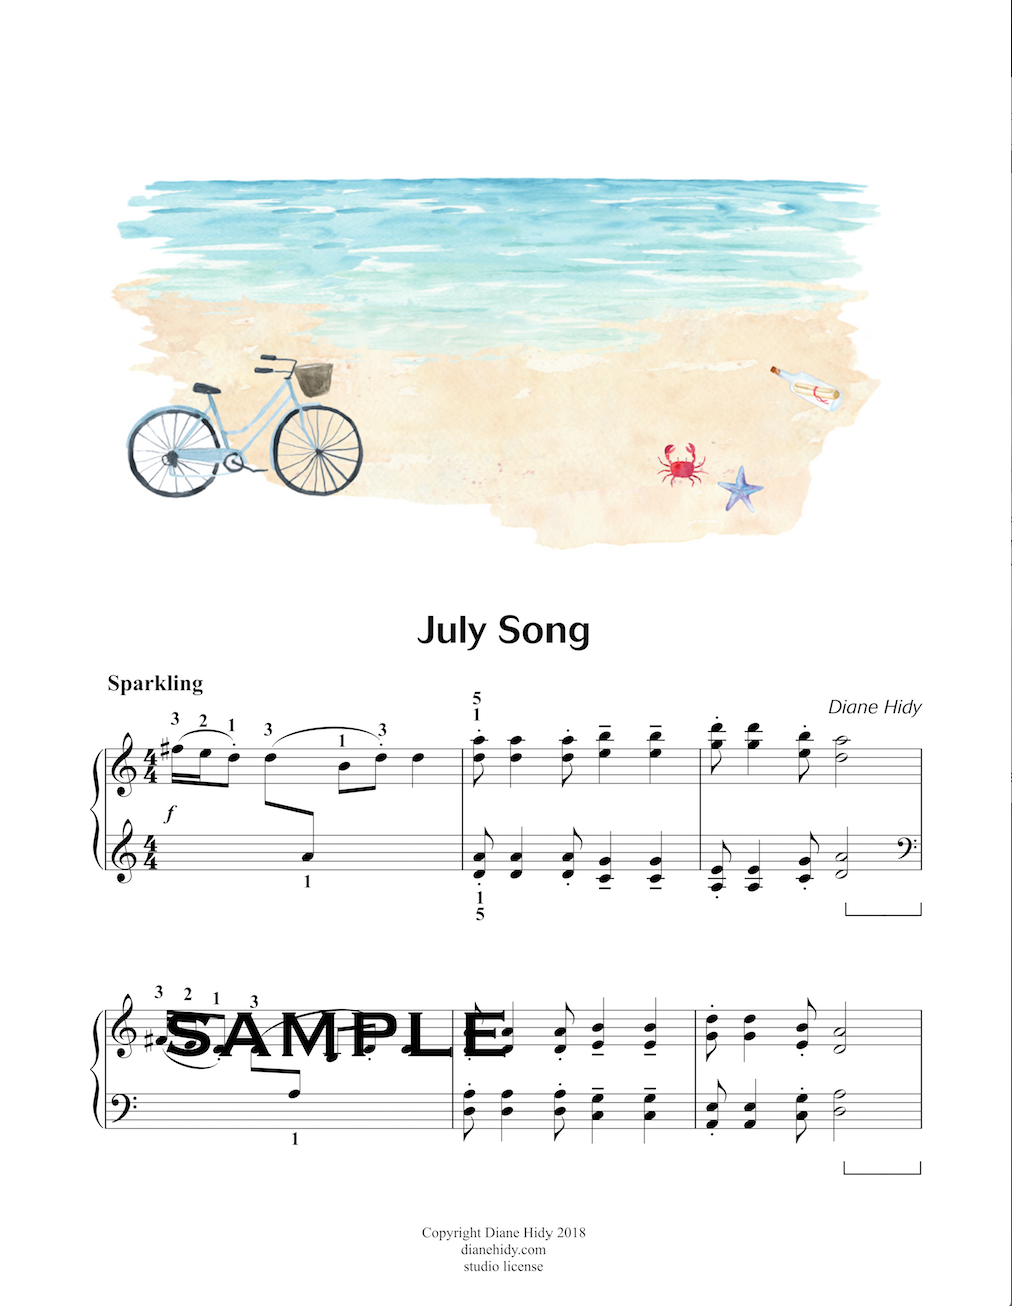 July Song (Studio License)